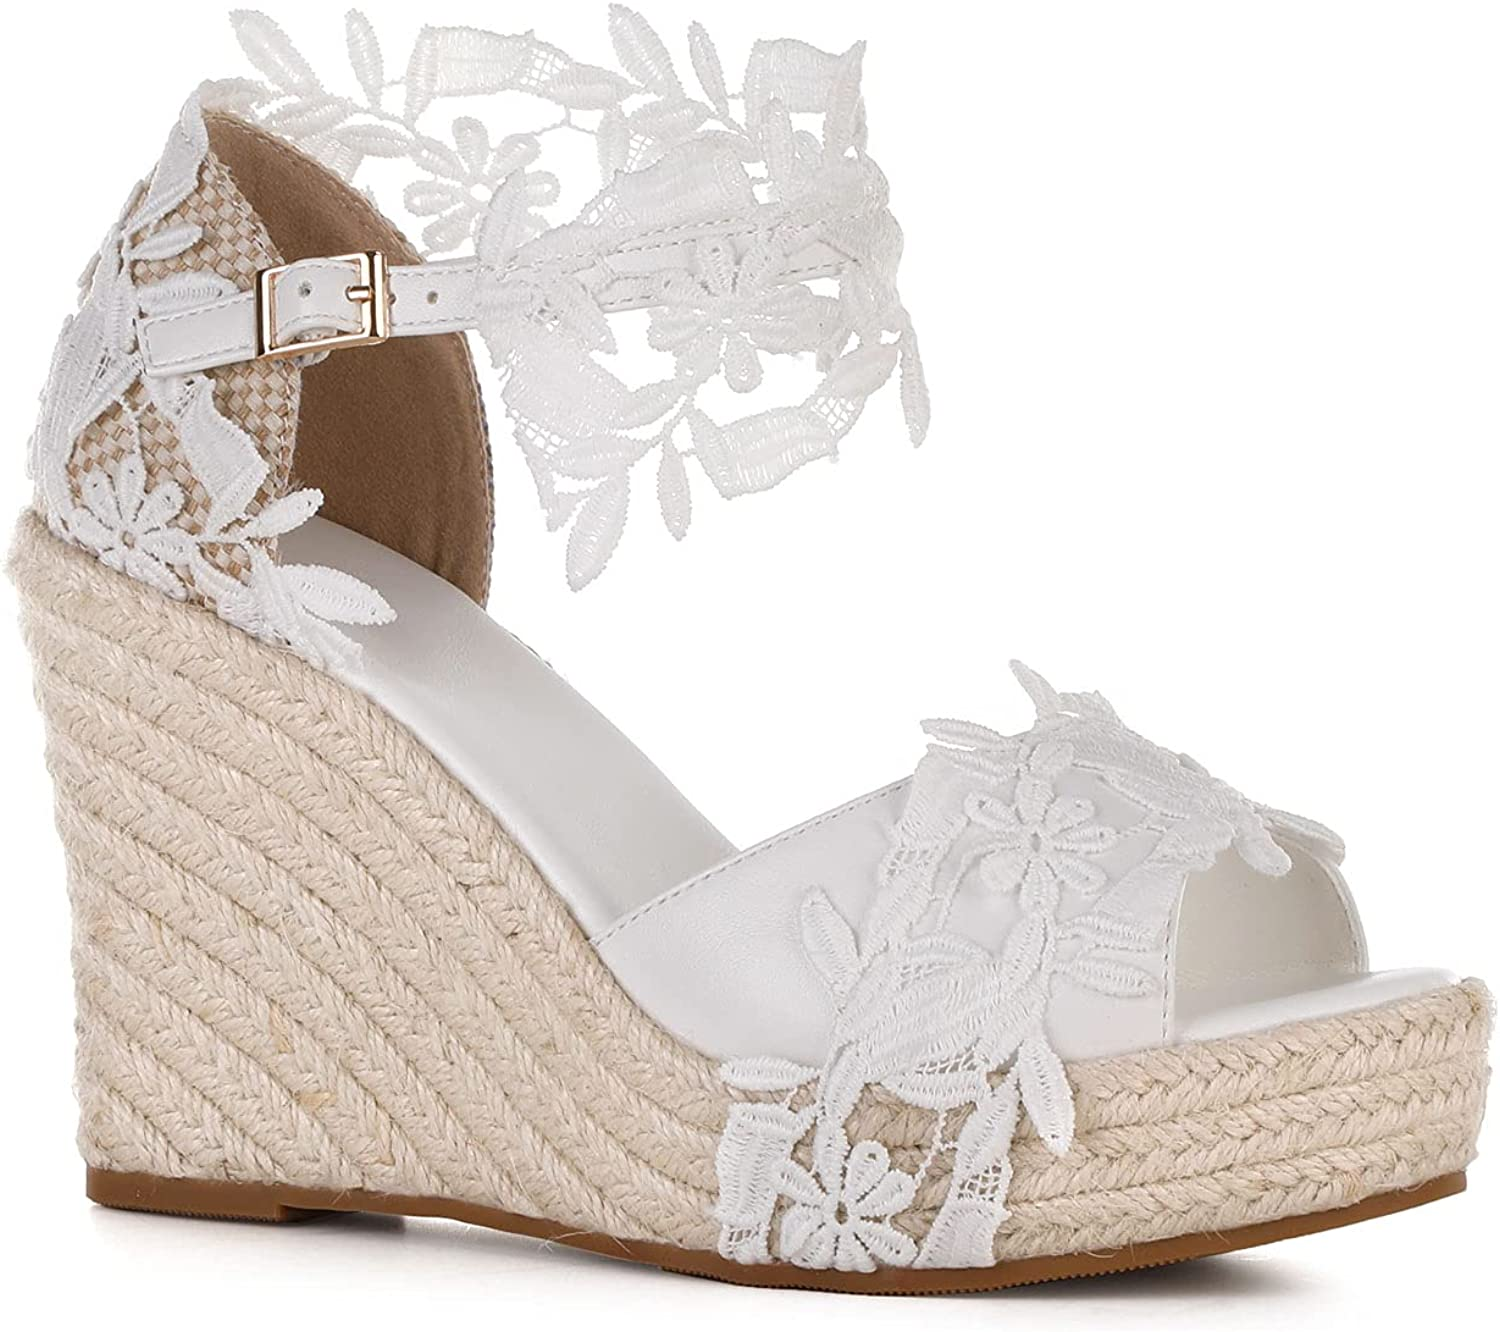 Women's Wedge Tucson Mall Platform Sandals Summer T Ankle Wedding Open Fees free Strap